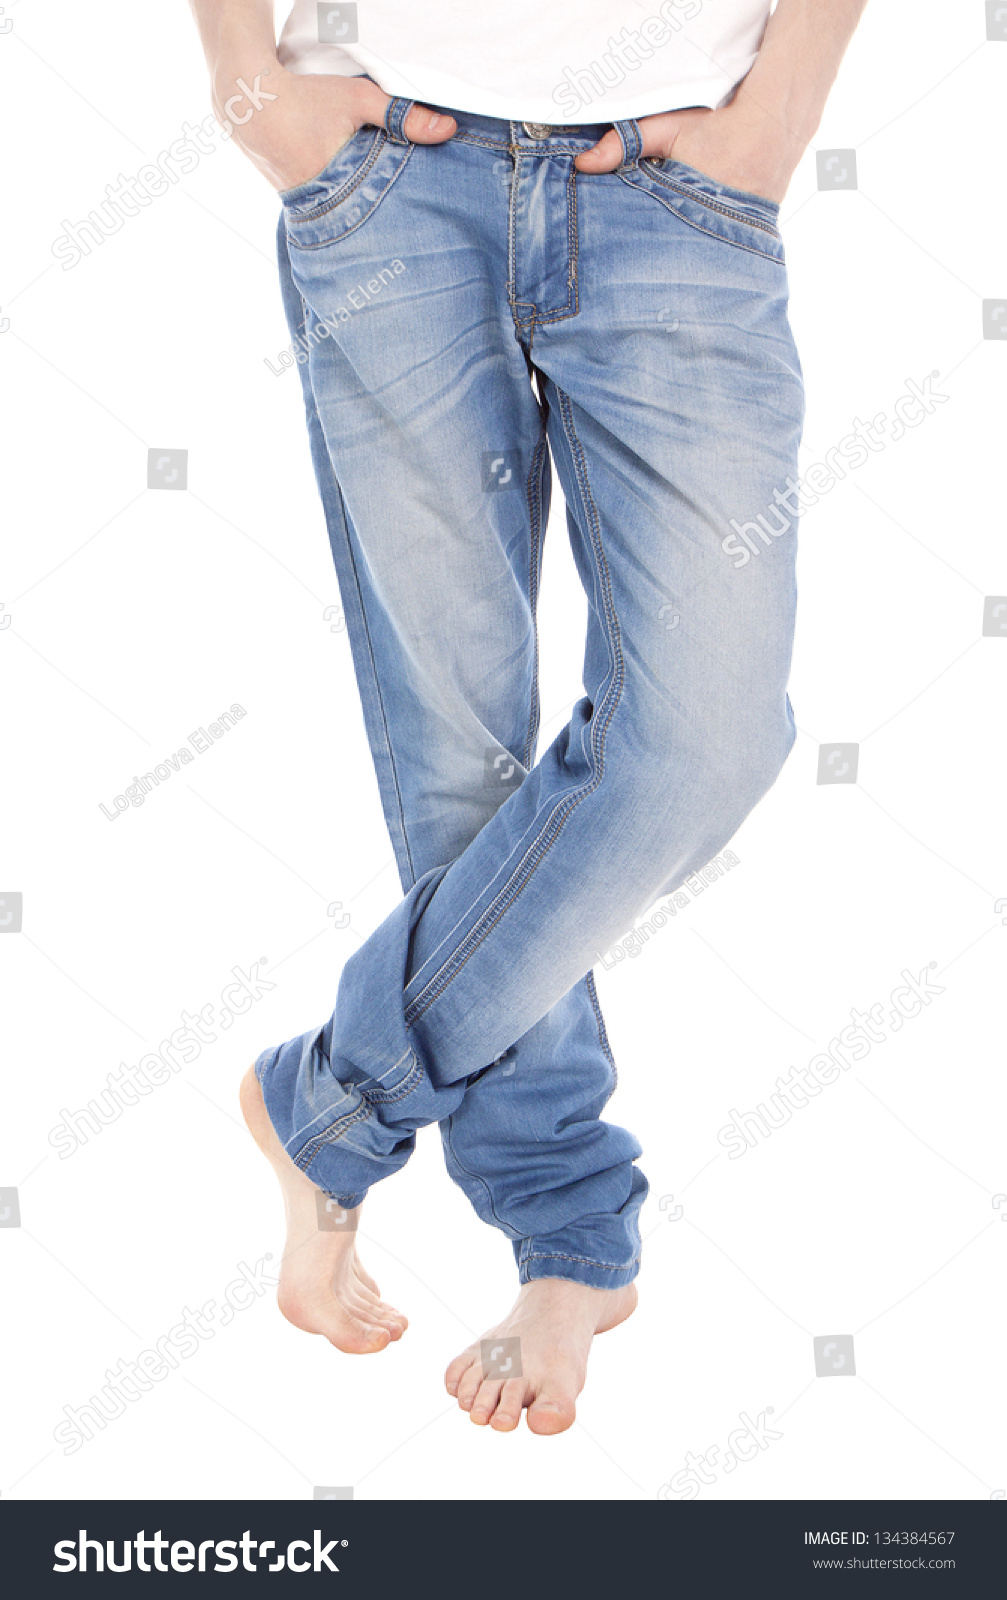 Young Man Jeans Tshirt Feet Isolated Stock Photo 134384567 ...